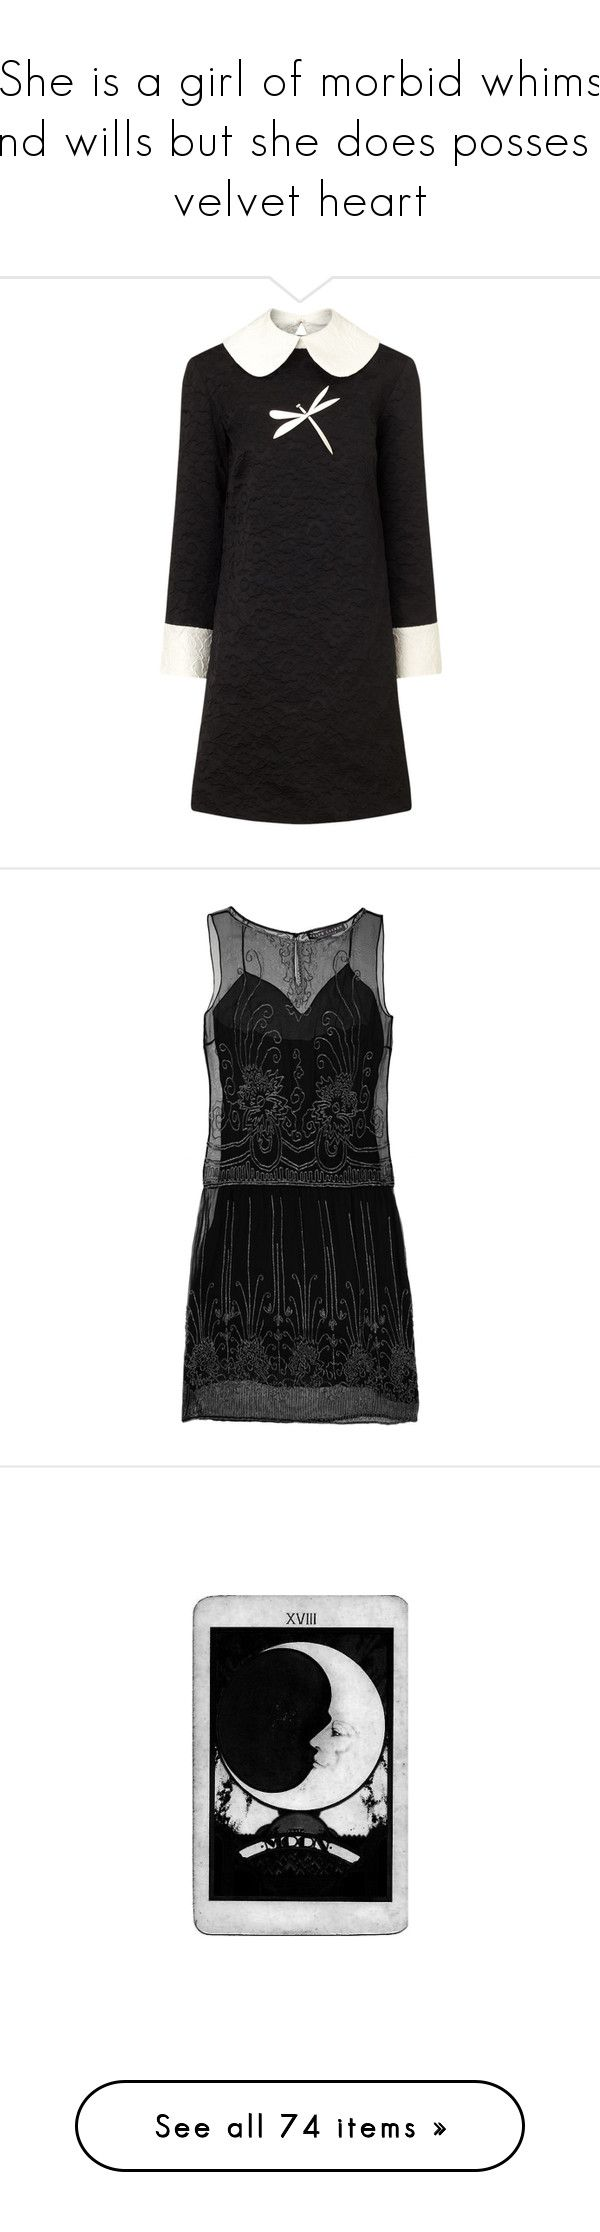 """""""She is a girl of morbid whims and wills but she does posses a velvet heart"""" by babytangerine ❤ liked on Polyvore featuring dresses, black, peter pan dress, textured dress, open back dresses, jacquard dress, peter pan collar dress, black dress, party dresses and ralph lauren"""